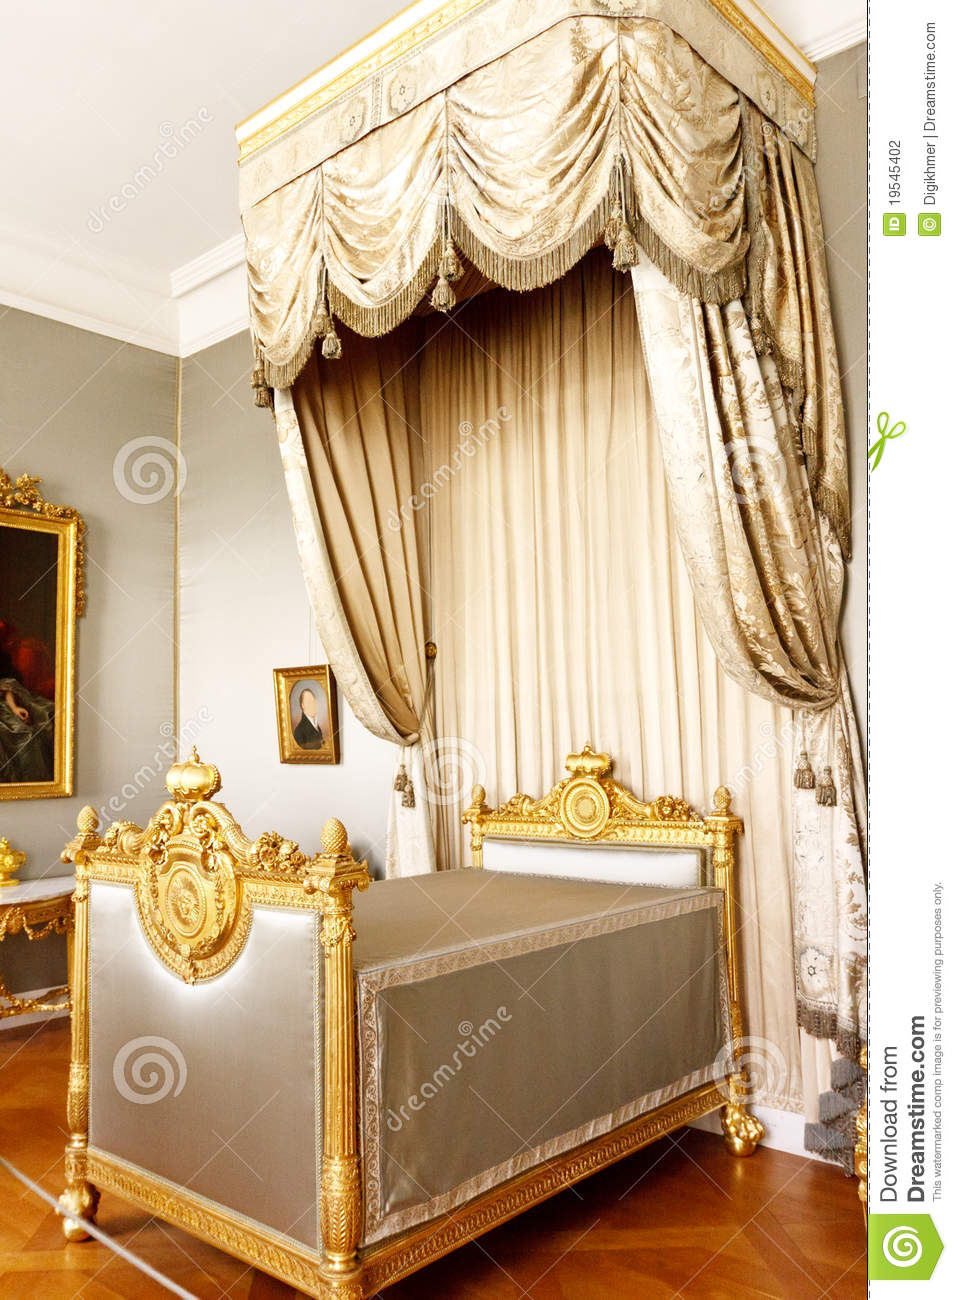 Bedroom With Royal Canopy Bed Stock Photo  Image 19545402